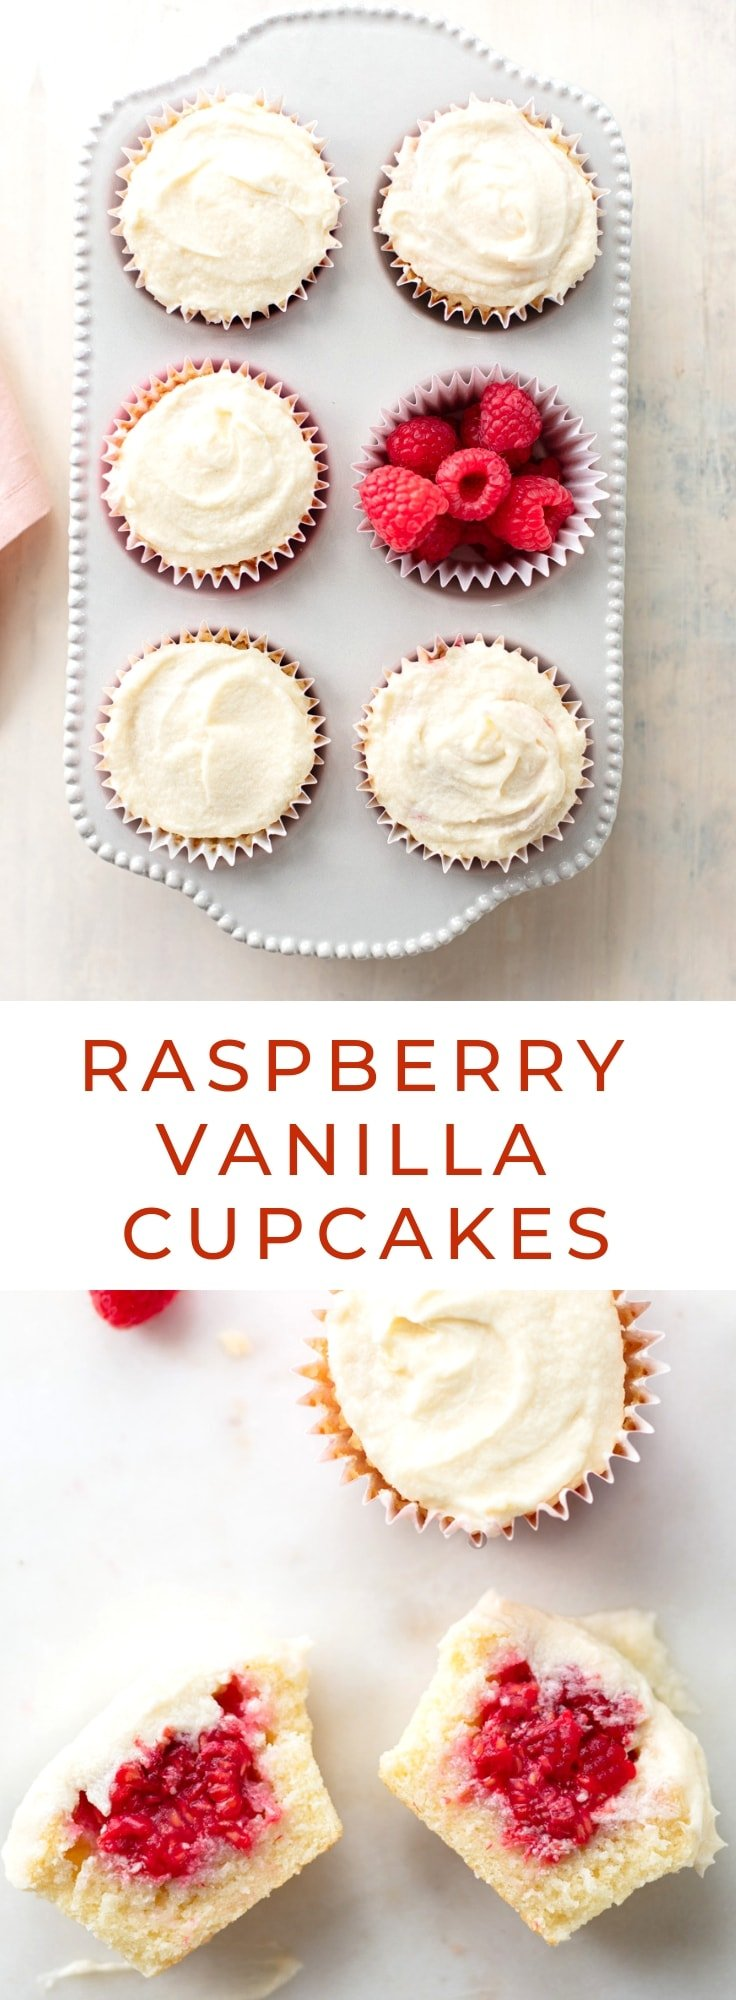 Raspberry-Filled Vanilla Cupcakes: A recipe for the best moist white cupcakes, filled with fresh berries and frosted with Buttermilk Buttercream